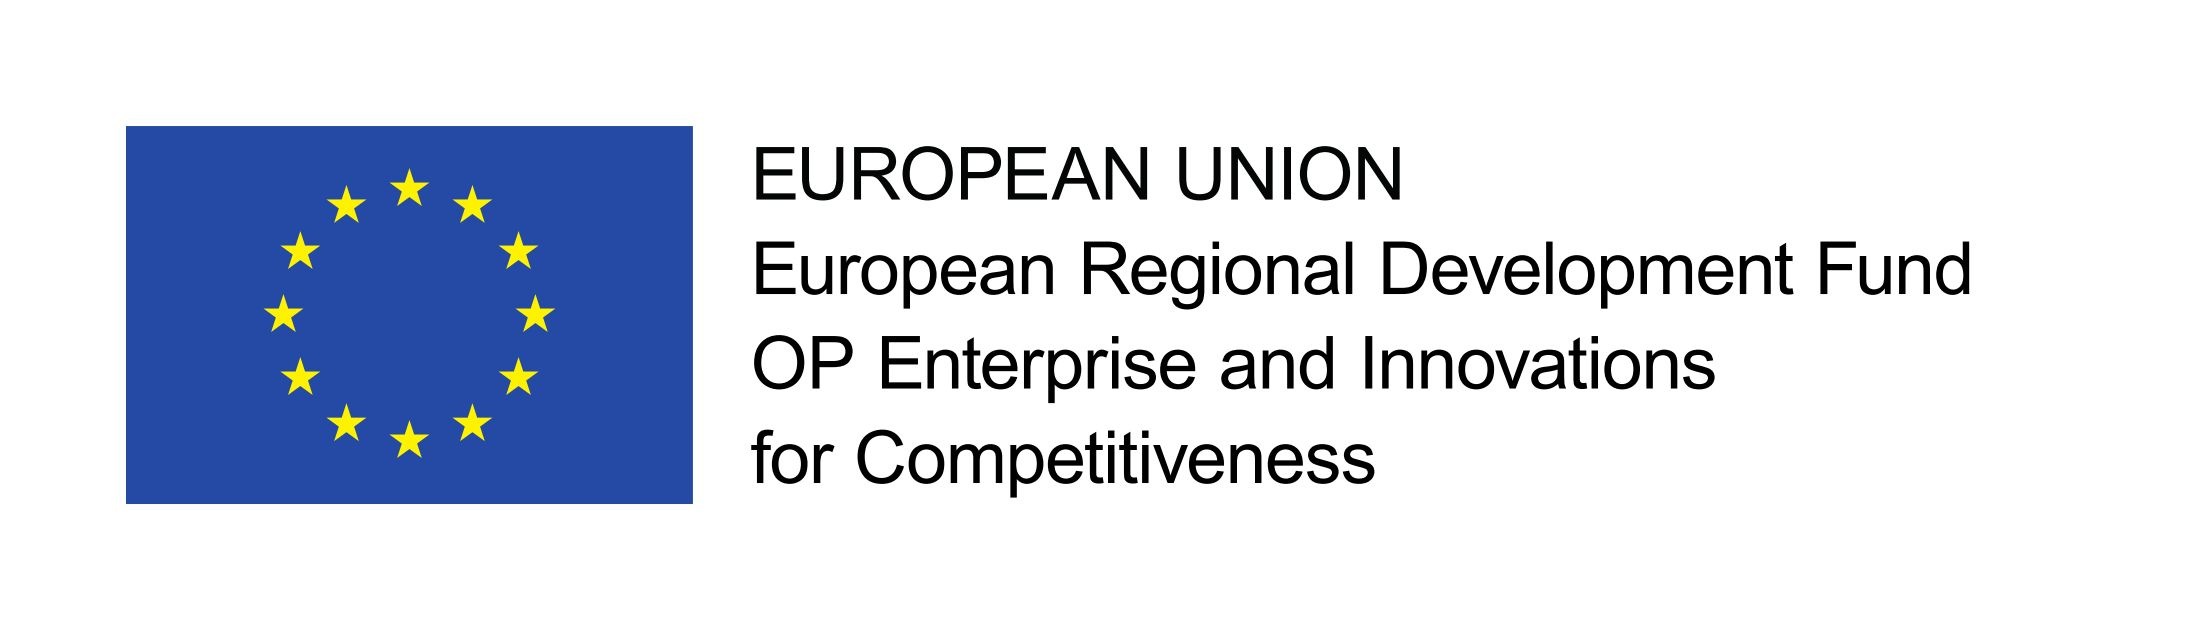 European Regional Development Fund OP Enterprise and Innovations for Competitiveness